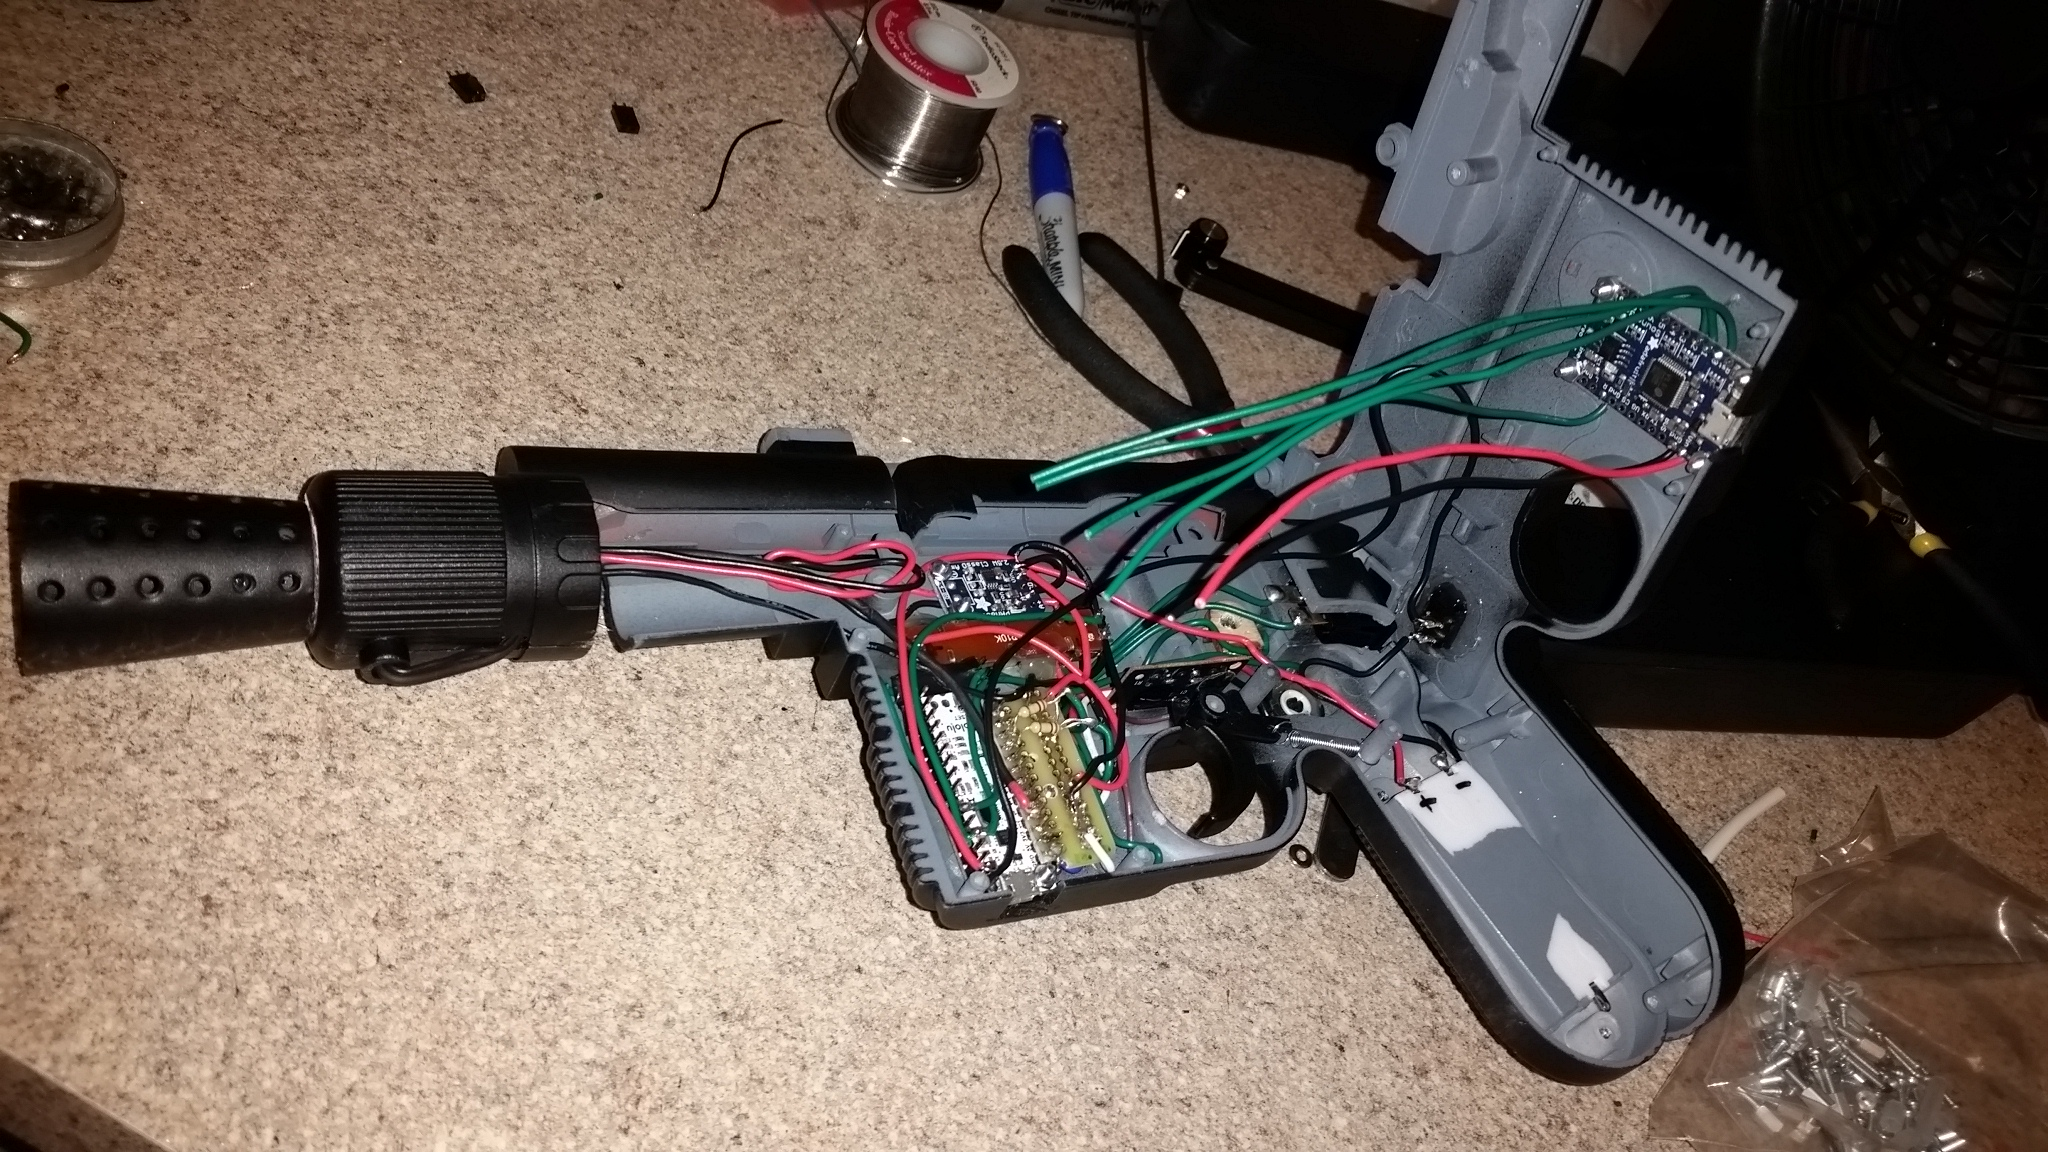 Han Solo Blaster Toy Upgraded To Incredible Wedding Gift With Interactive Traffic Lights Circuit Diagram Heres Some More Build Shots And Diagrams Of The Guns Features